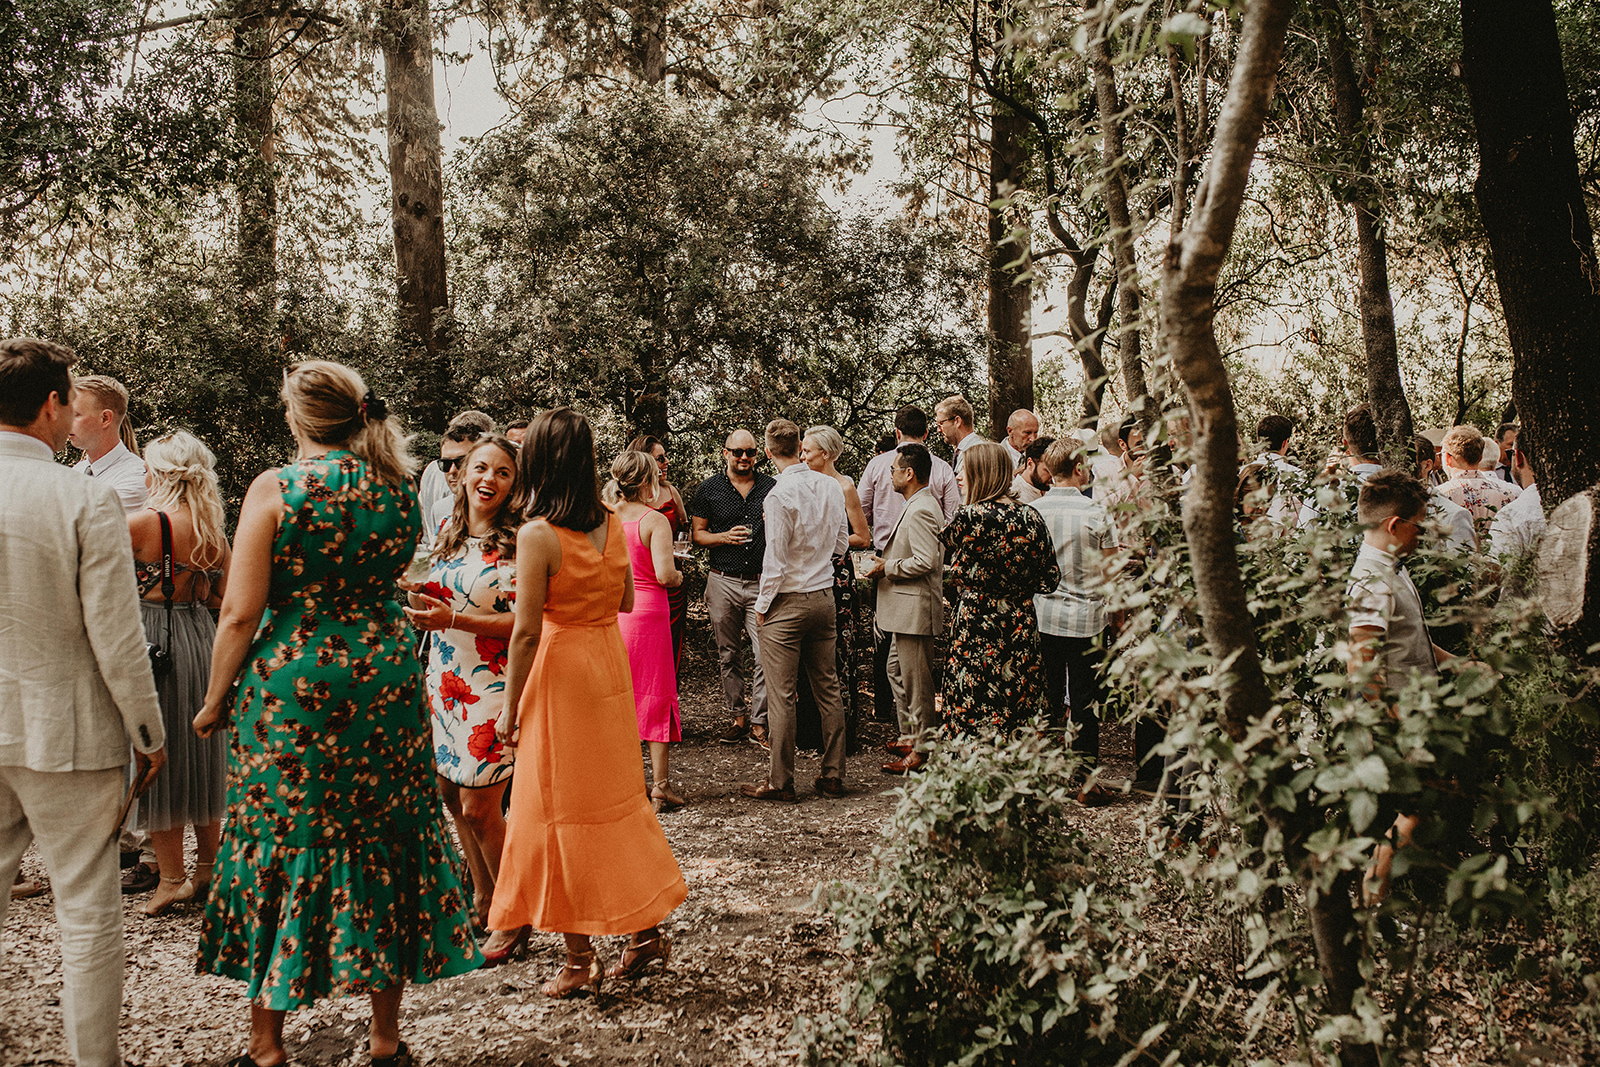 forest wedding guests having fun